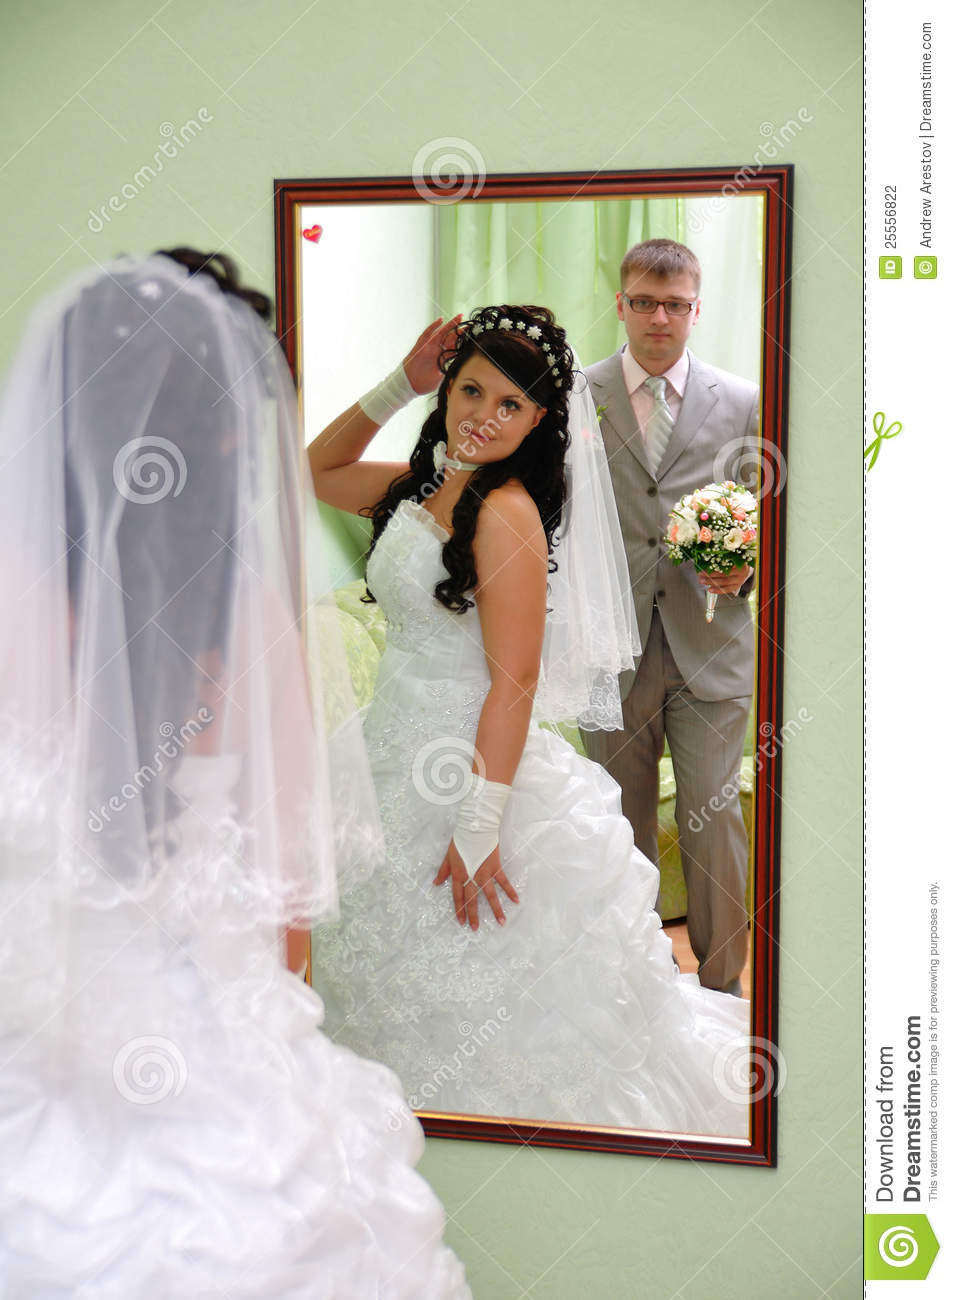 The Groom And The Bride Look In A Mirror Stock Photography ...